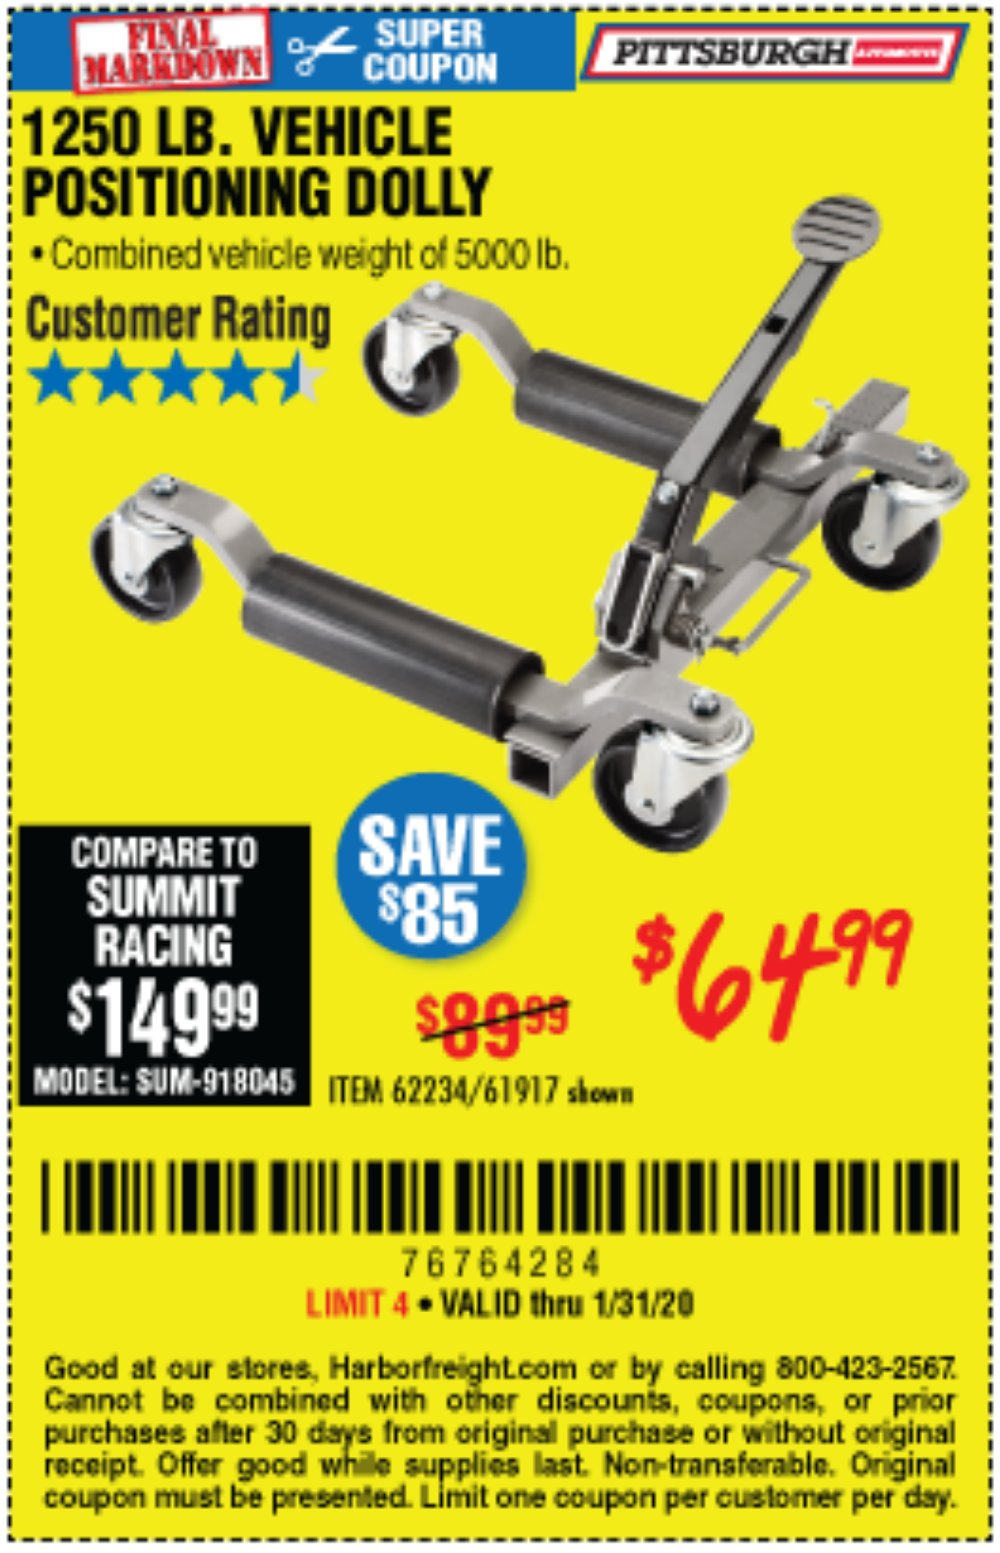 Harbor Freight Coupon, HF Coupons - 1250 Lb. Vehicle Positioning Dolly